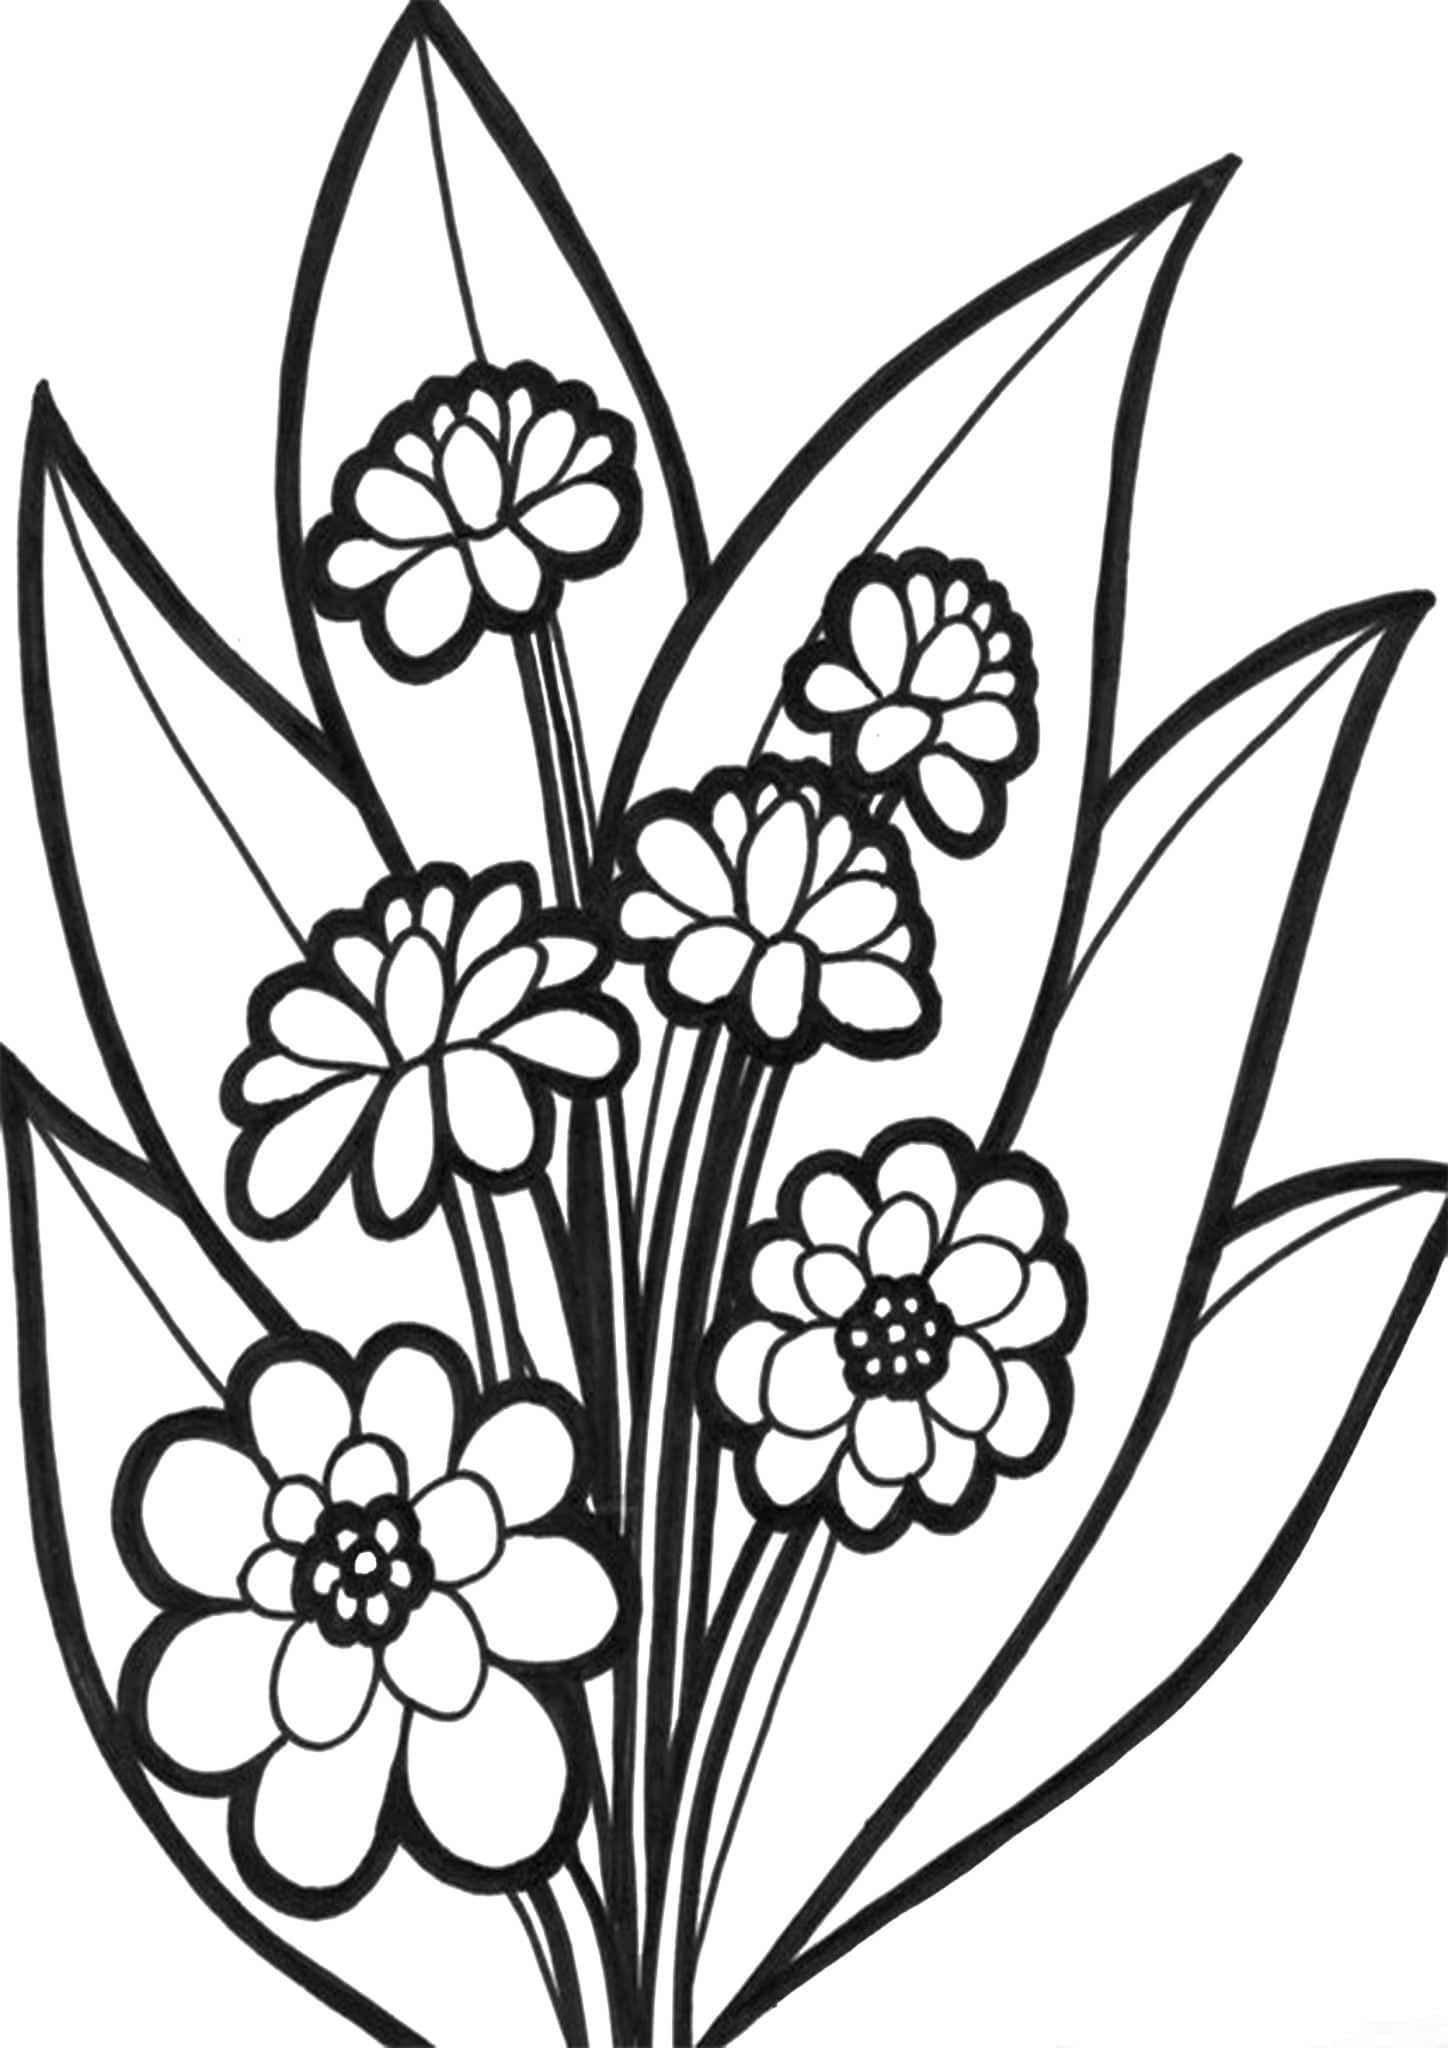 colouring pictures of plants free easy to print flower coloring pages tulamama pictures colouring of plants